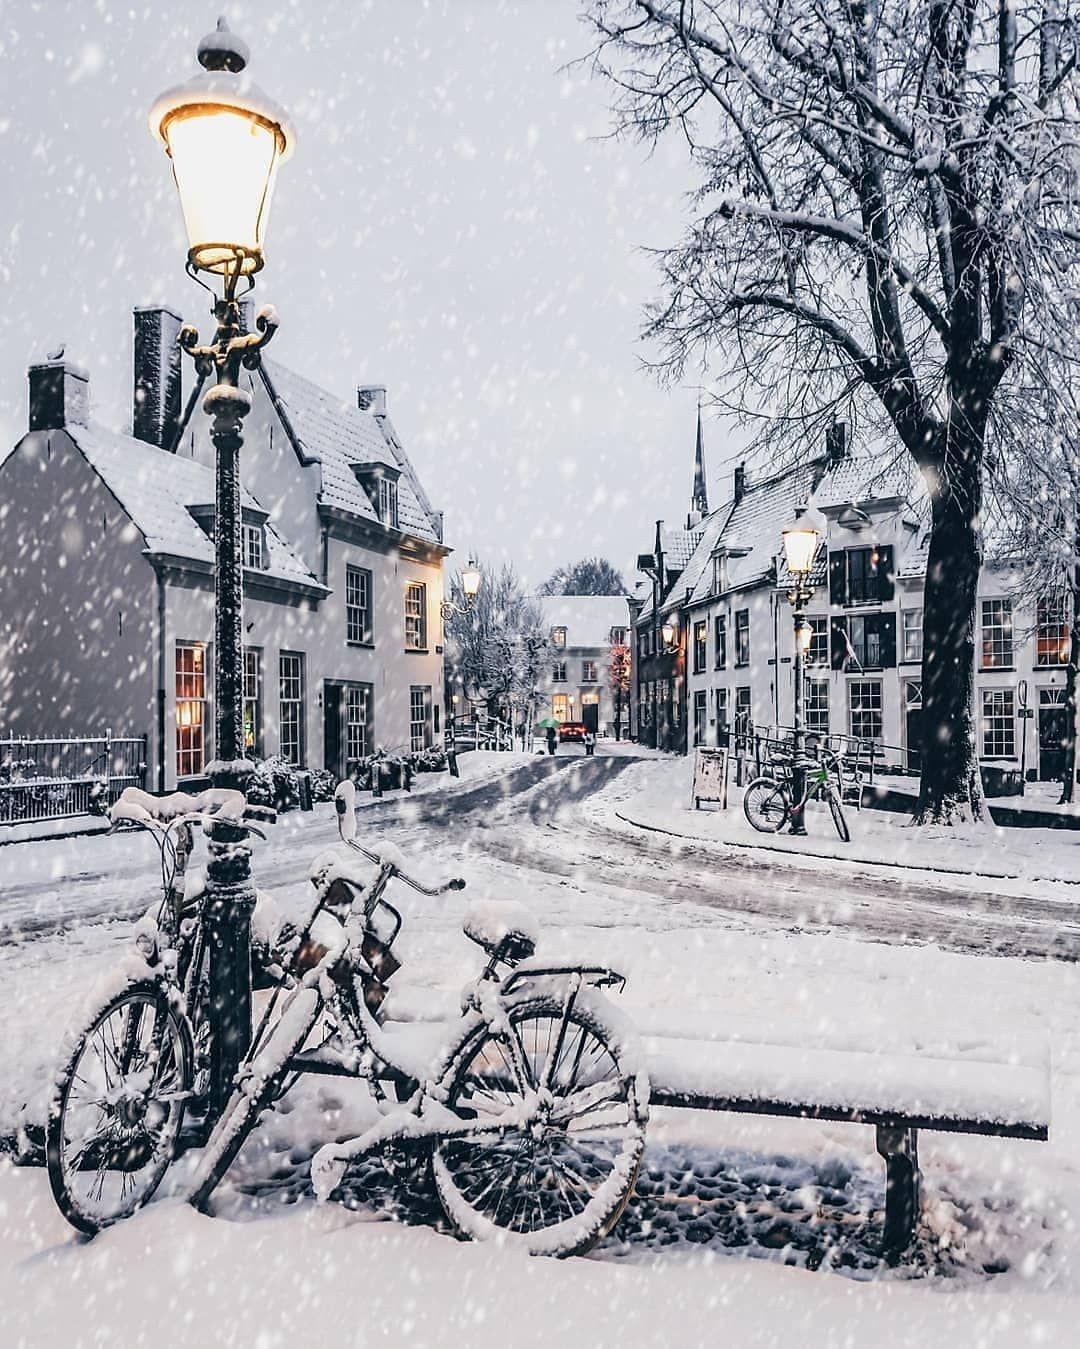 "Photo of Europe on Instagram: ""#amersfoort @ a_wasbeer winter vibes! ❄️ """